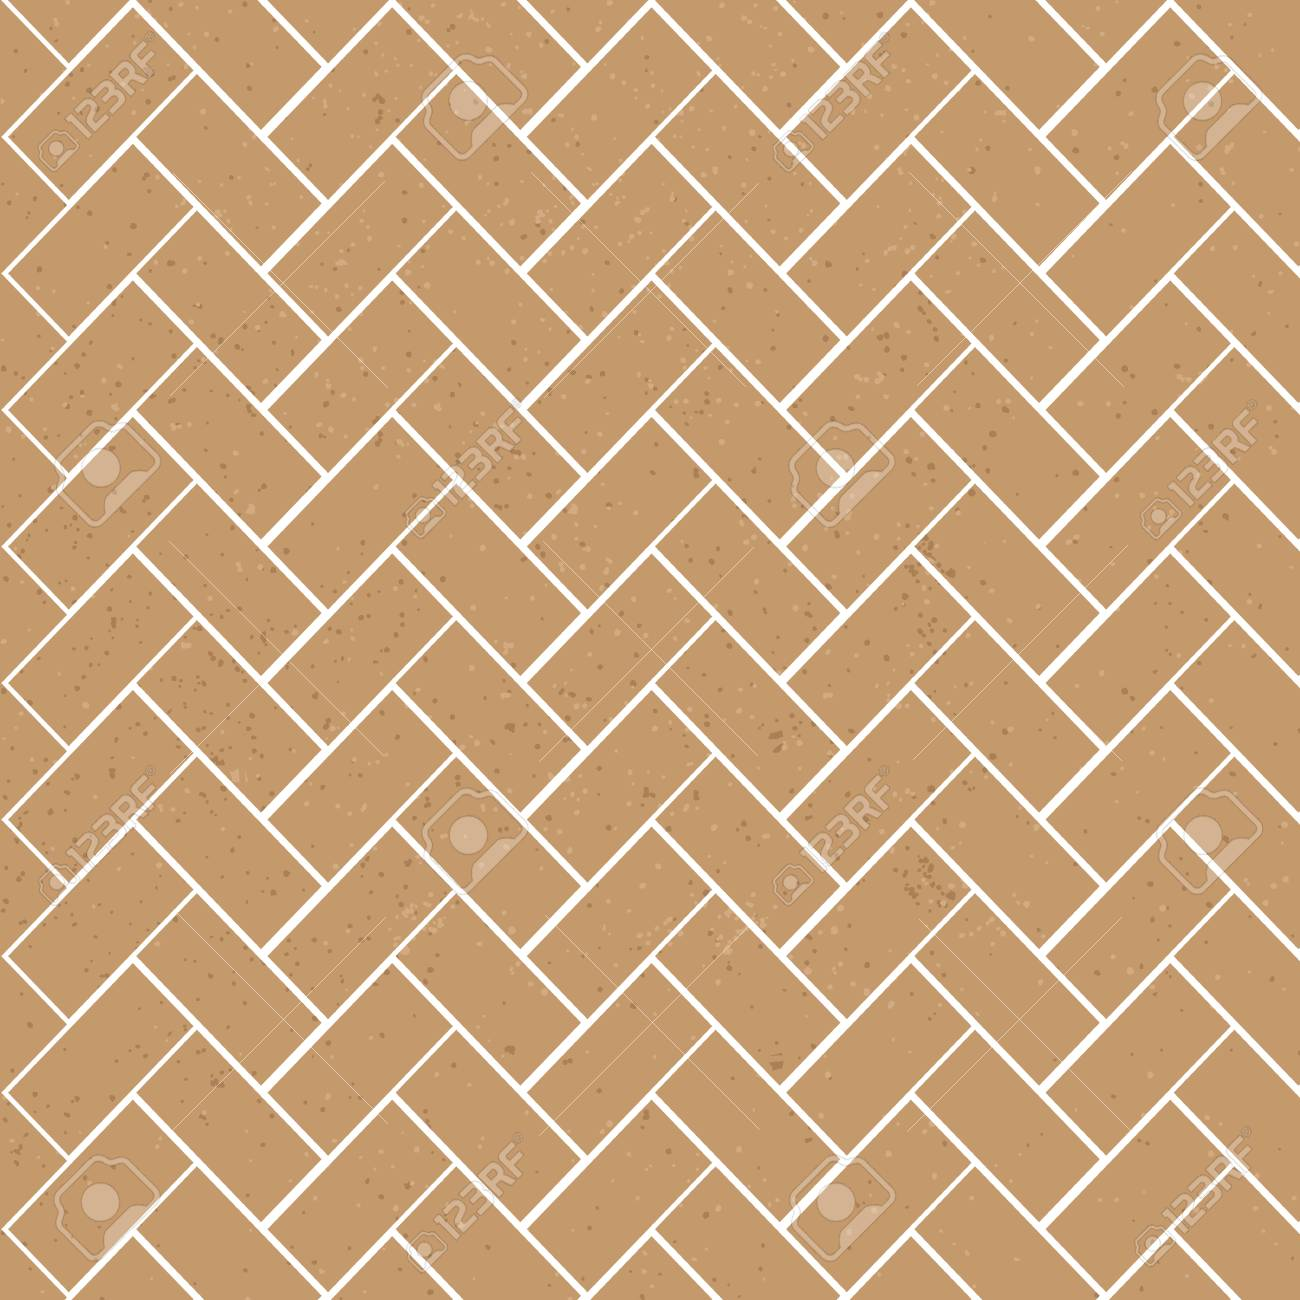 Brick Template | Brown Textured Brick Vector Seamless Pattern Template Royalty Free